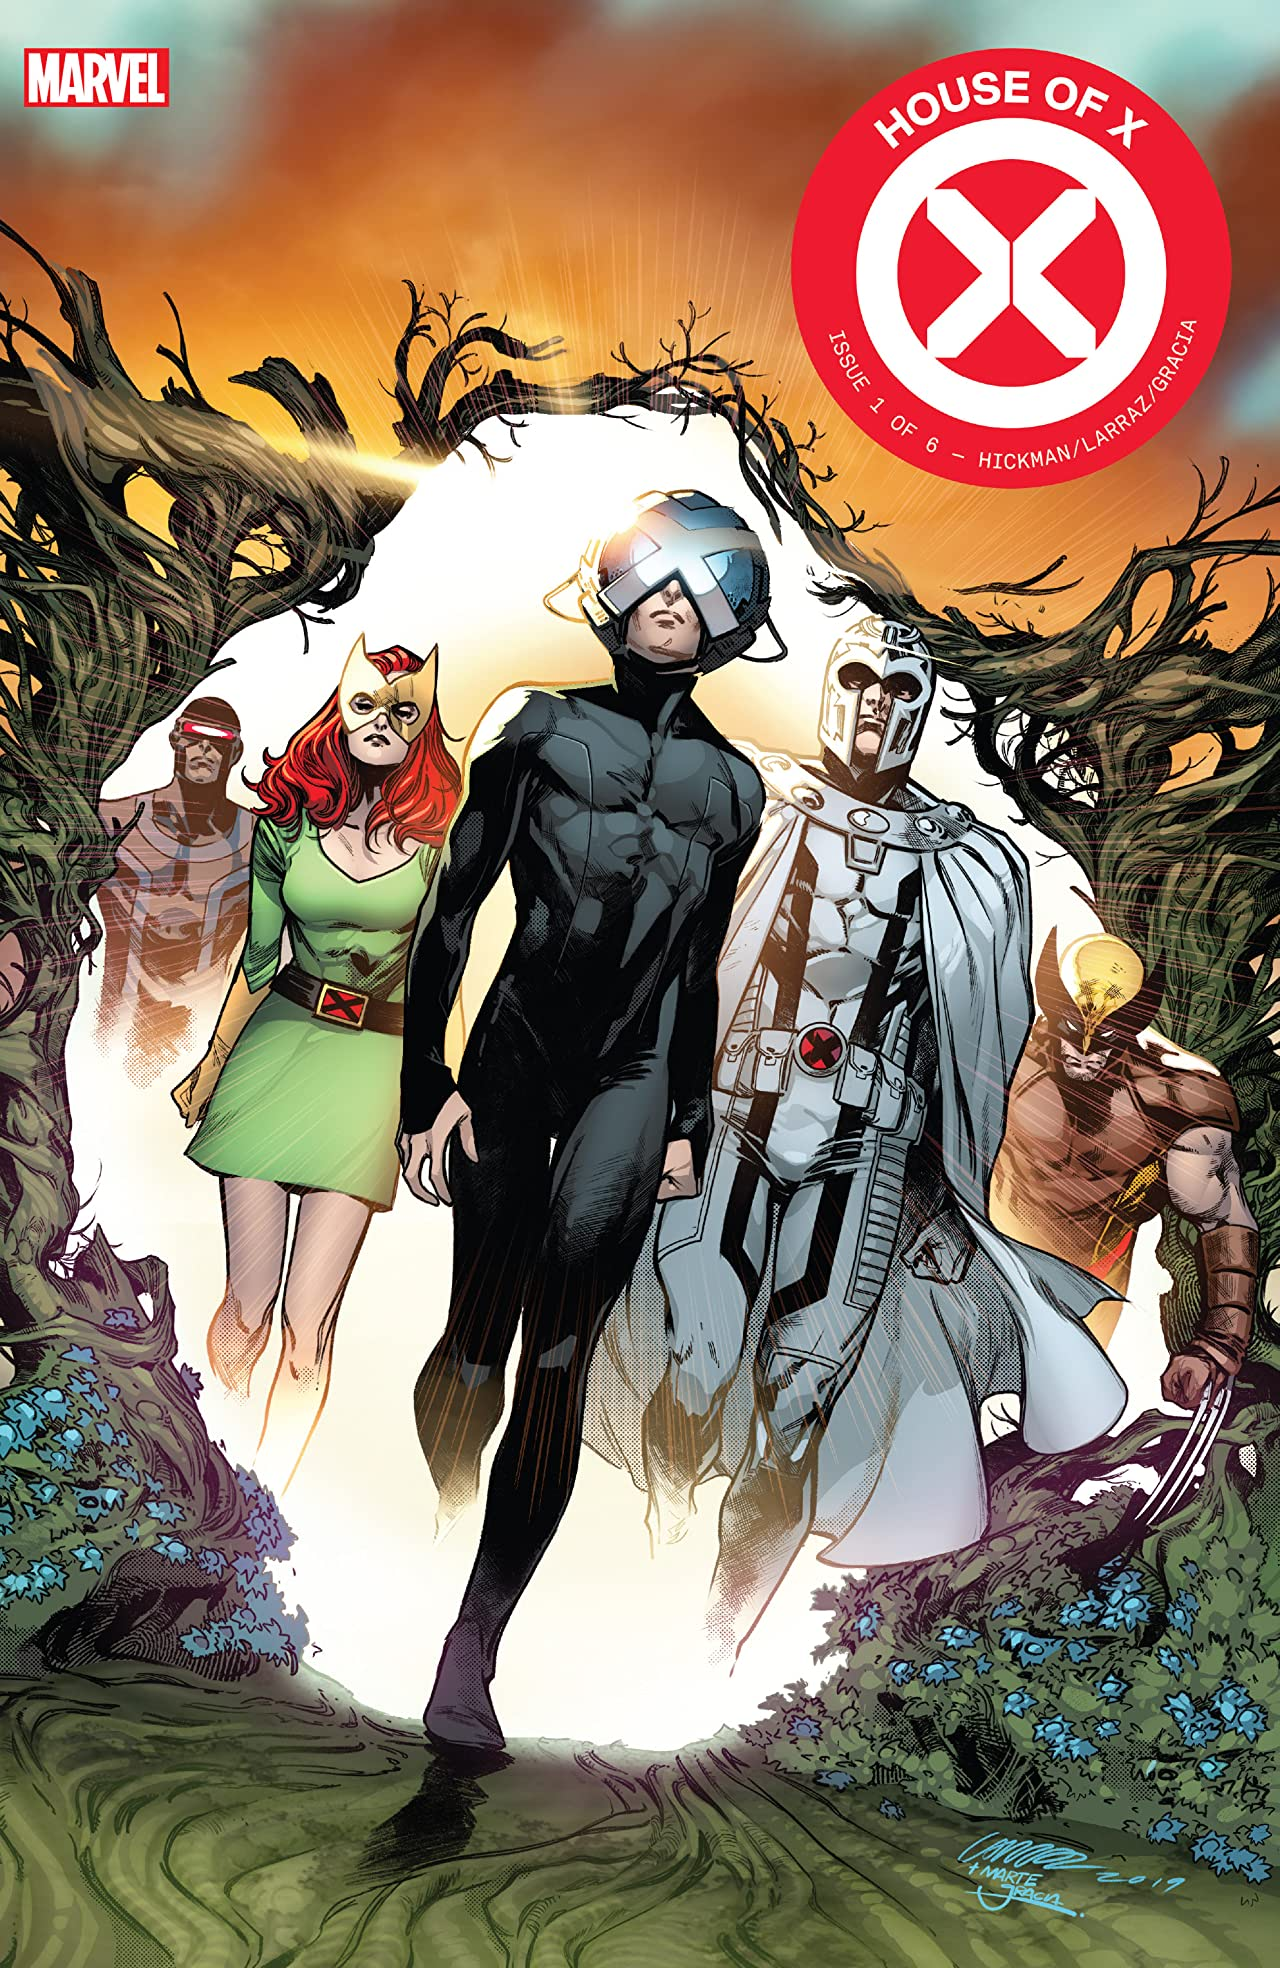 #8 House of X